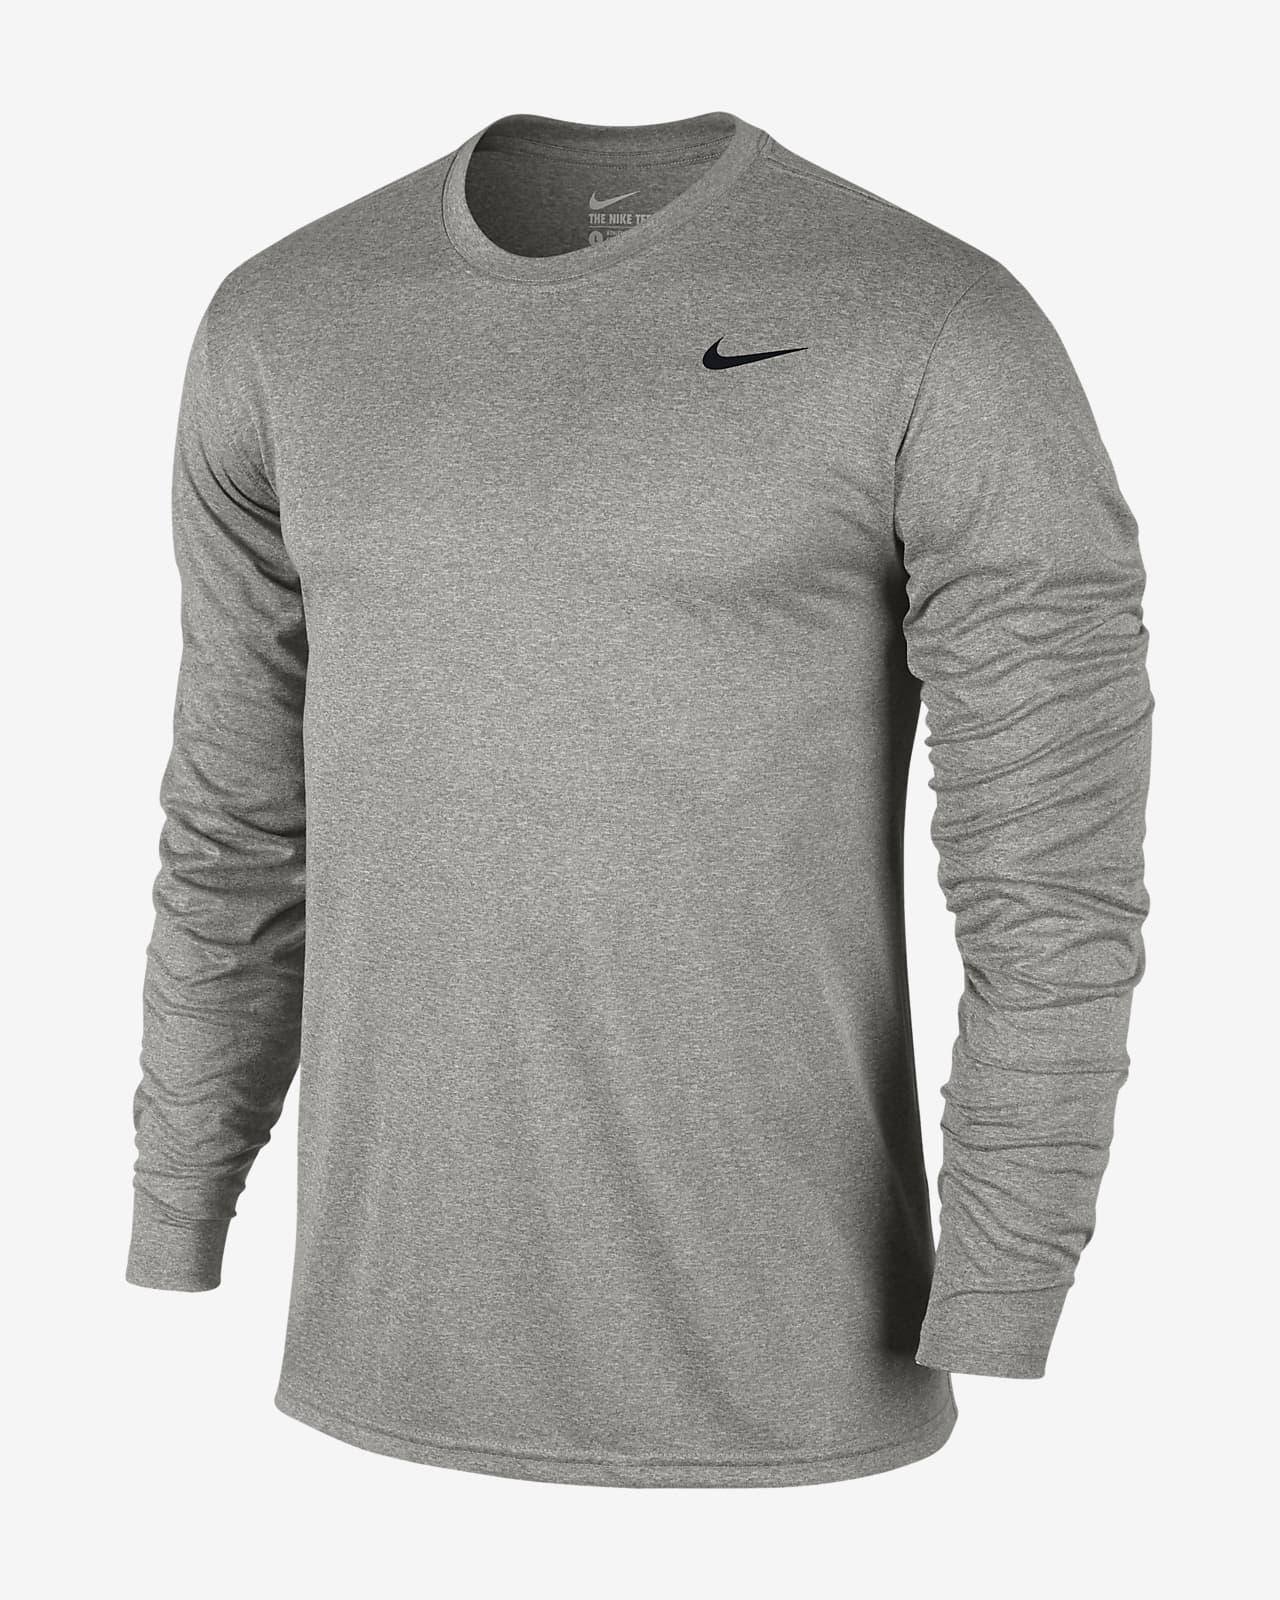 Nike Dri-FIT Men's Long-Sleeve Training T-Shirt